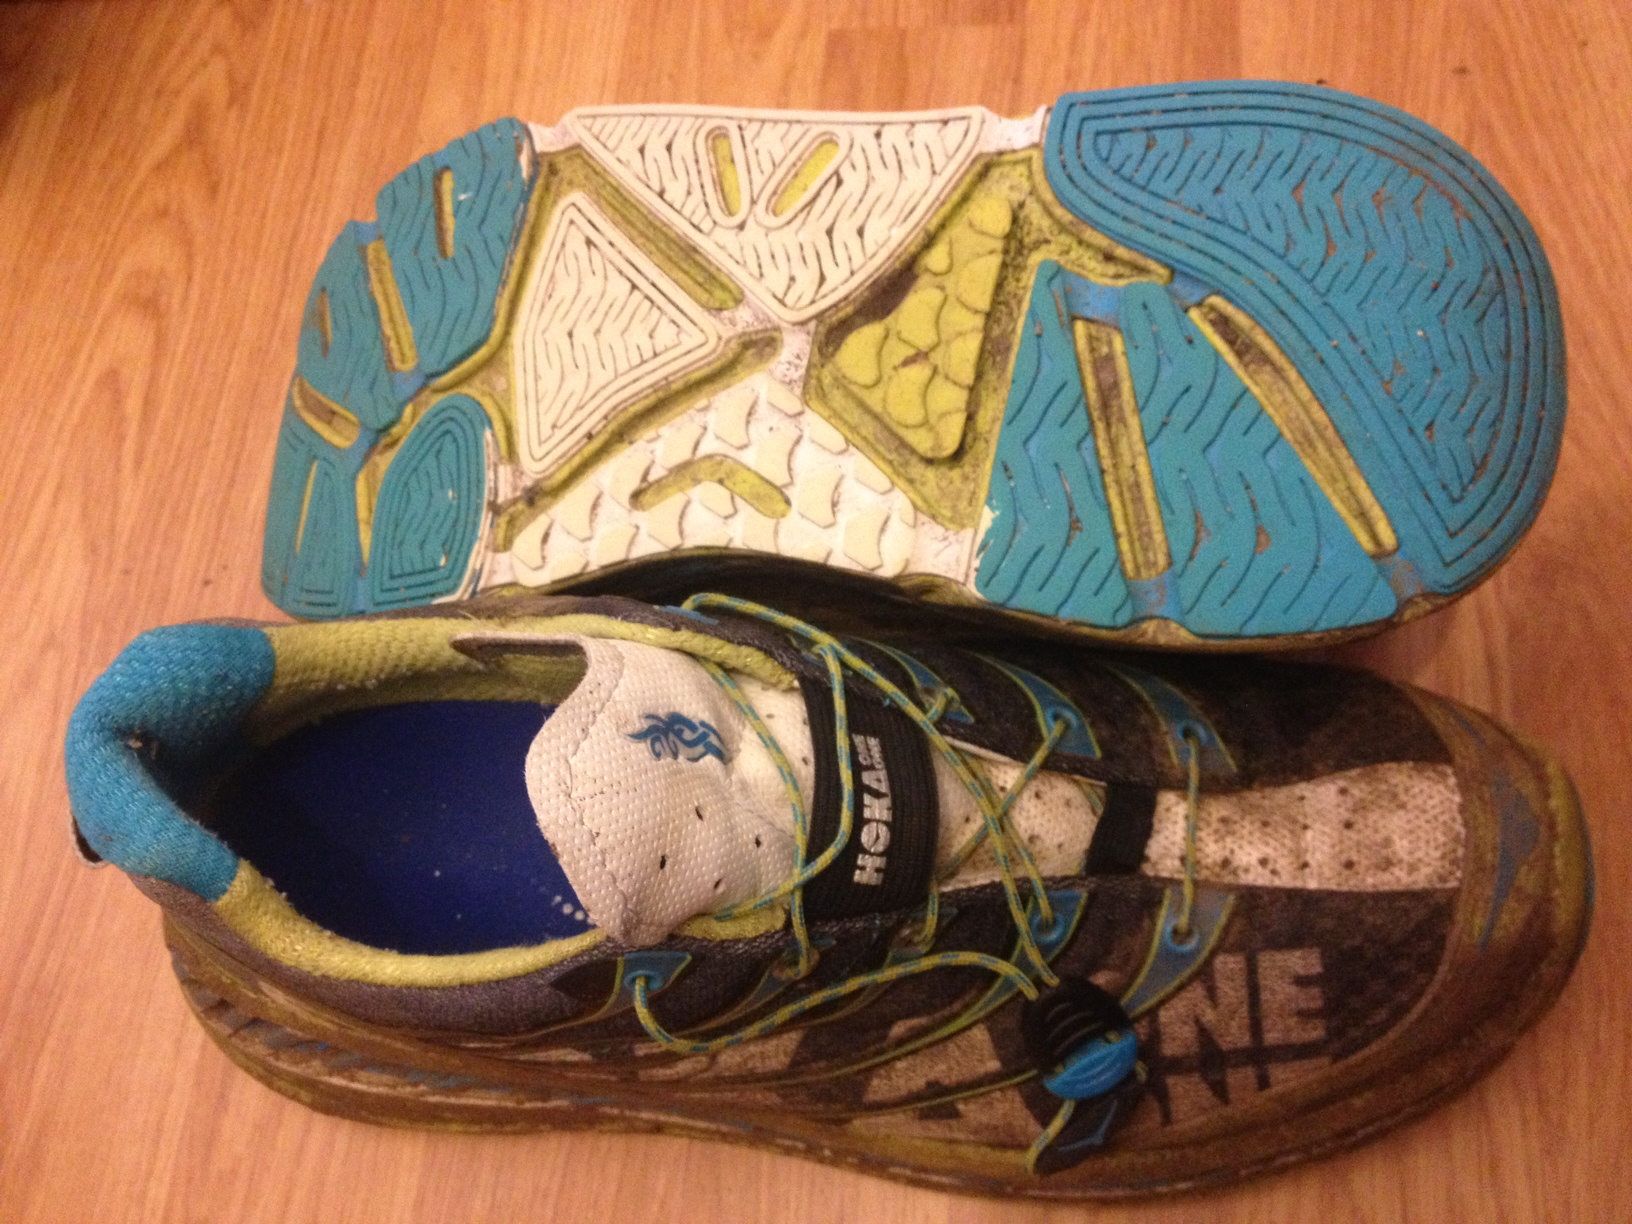 Hokas with about 100mile plus on them, yes they need a clean...